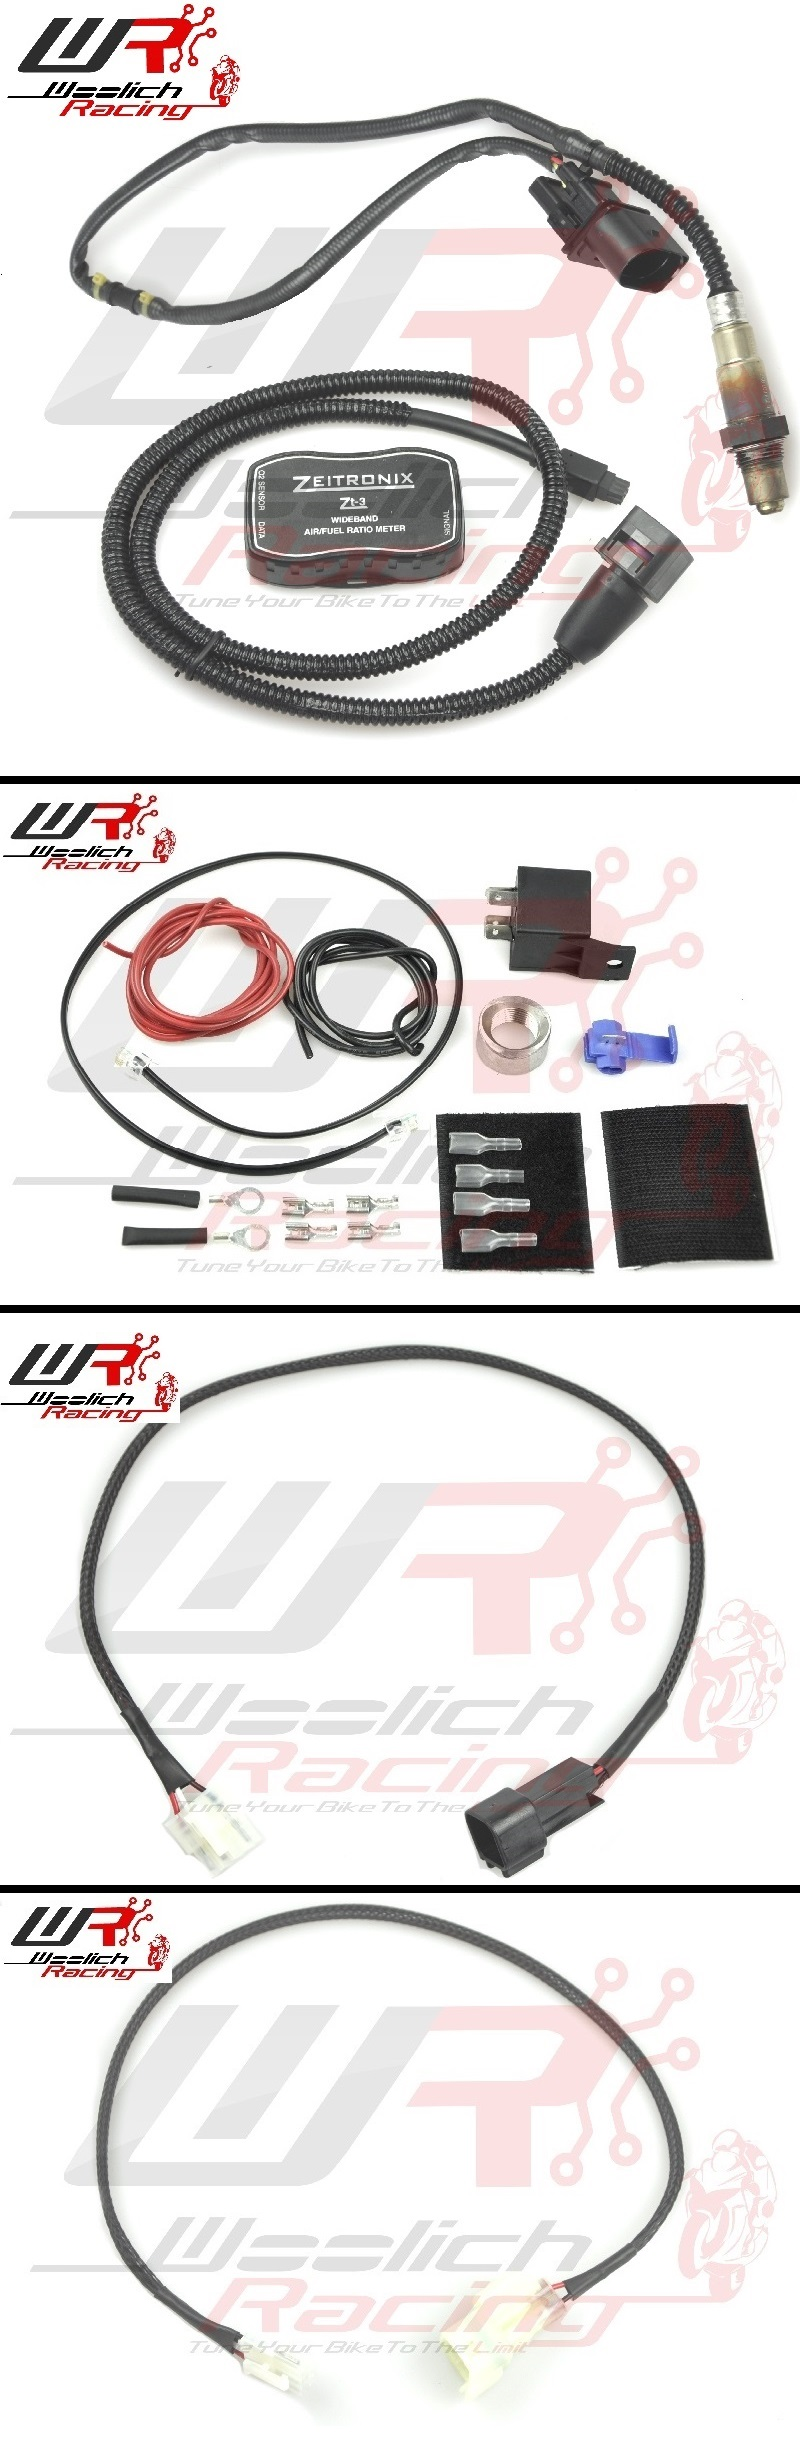 2006-2008 Kawasaki ER-6n - Log Box (Denso) v3 + Zeitronix ZT-3 Wideband O2 Package